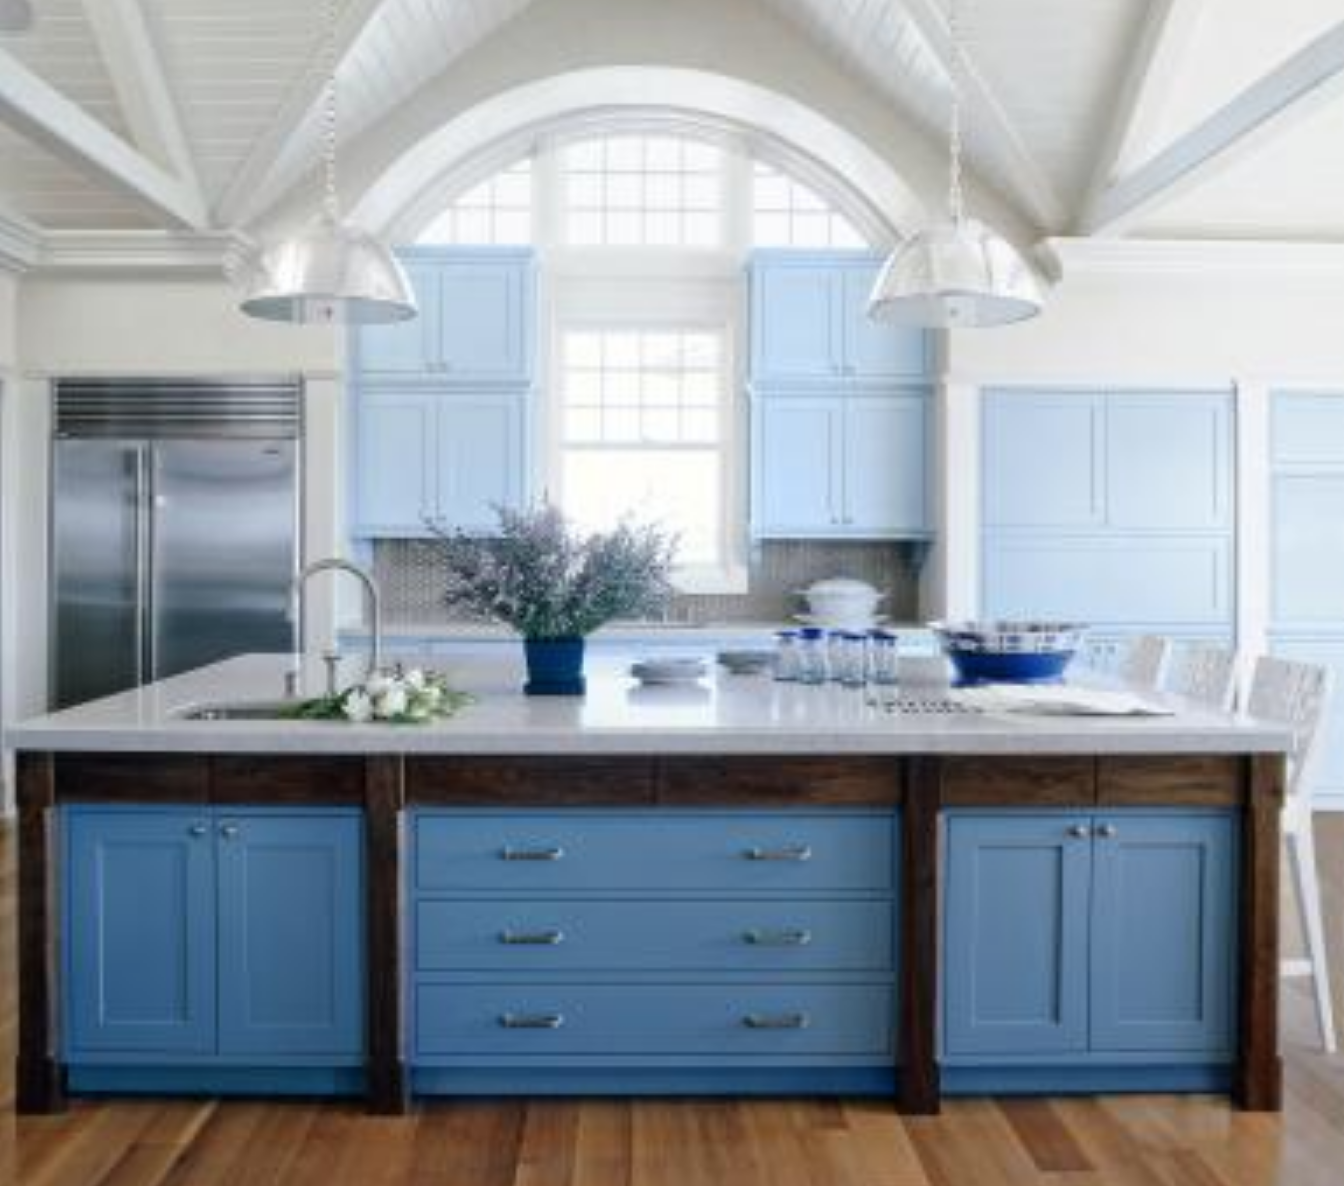 In This Kitchen Design These Shades Of Blue Work To Ground The High Ceilinged Space And Tie Tog Kitchen Cabinet Trends Kitchen Cabinets Kitchen Cabinet Colors